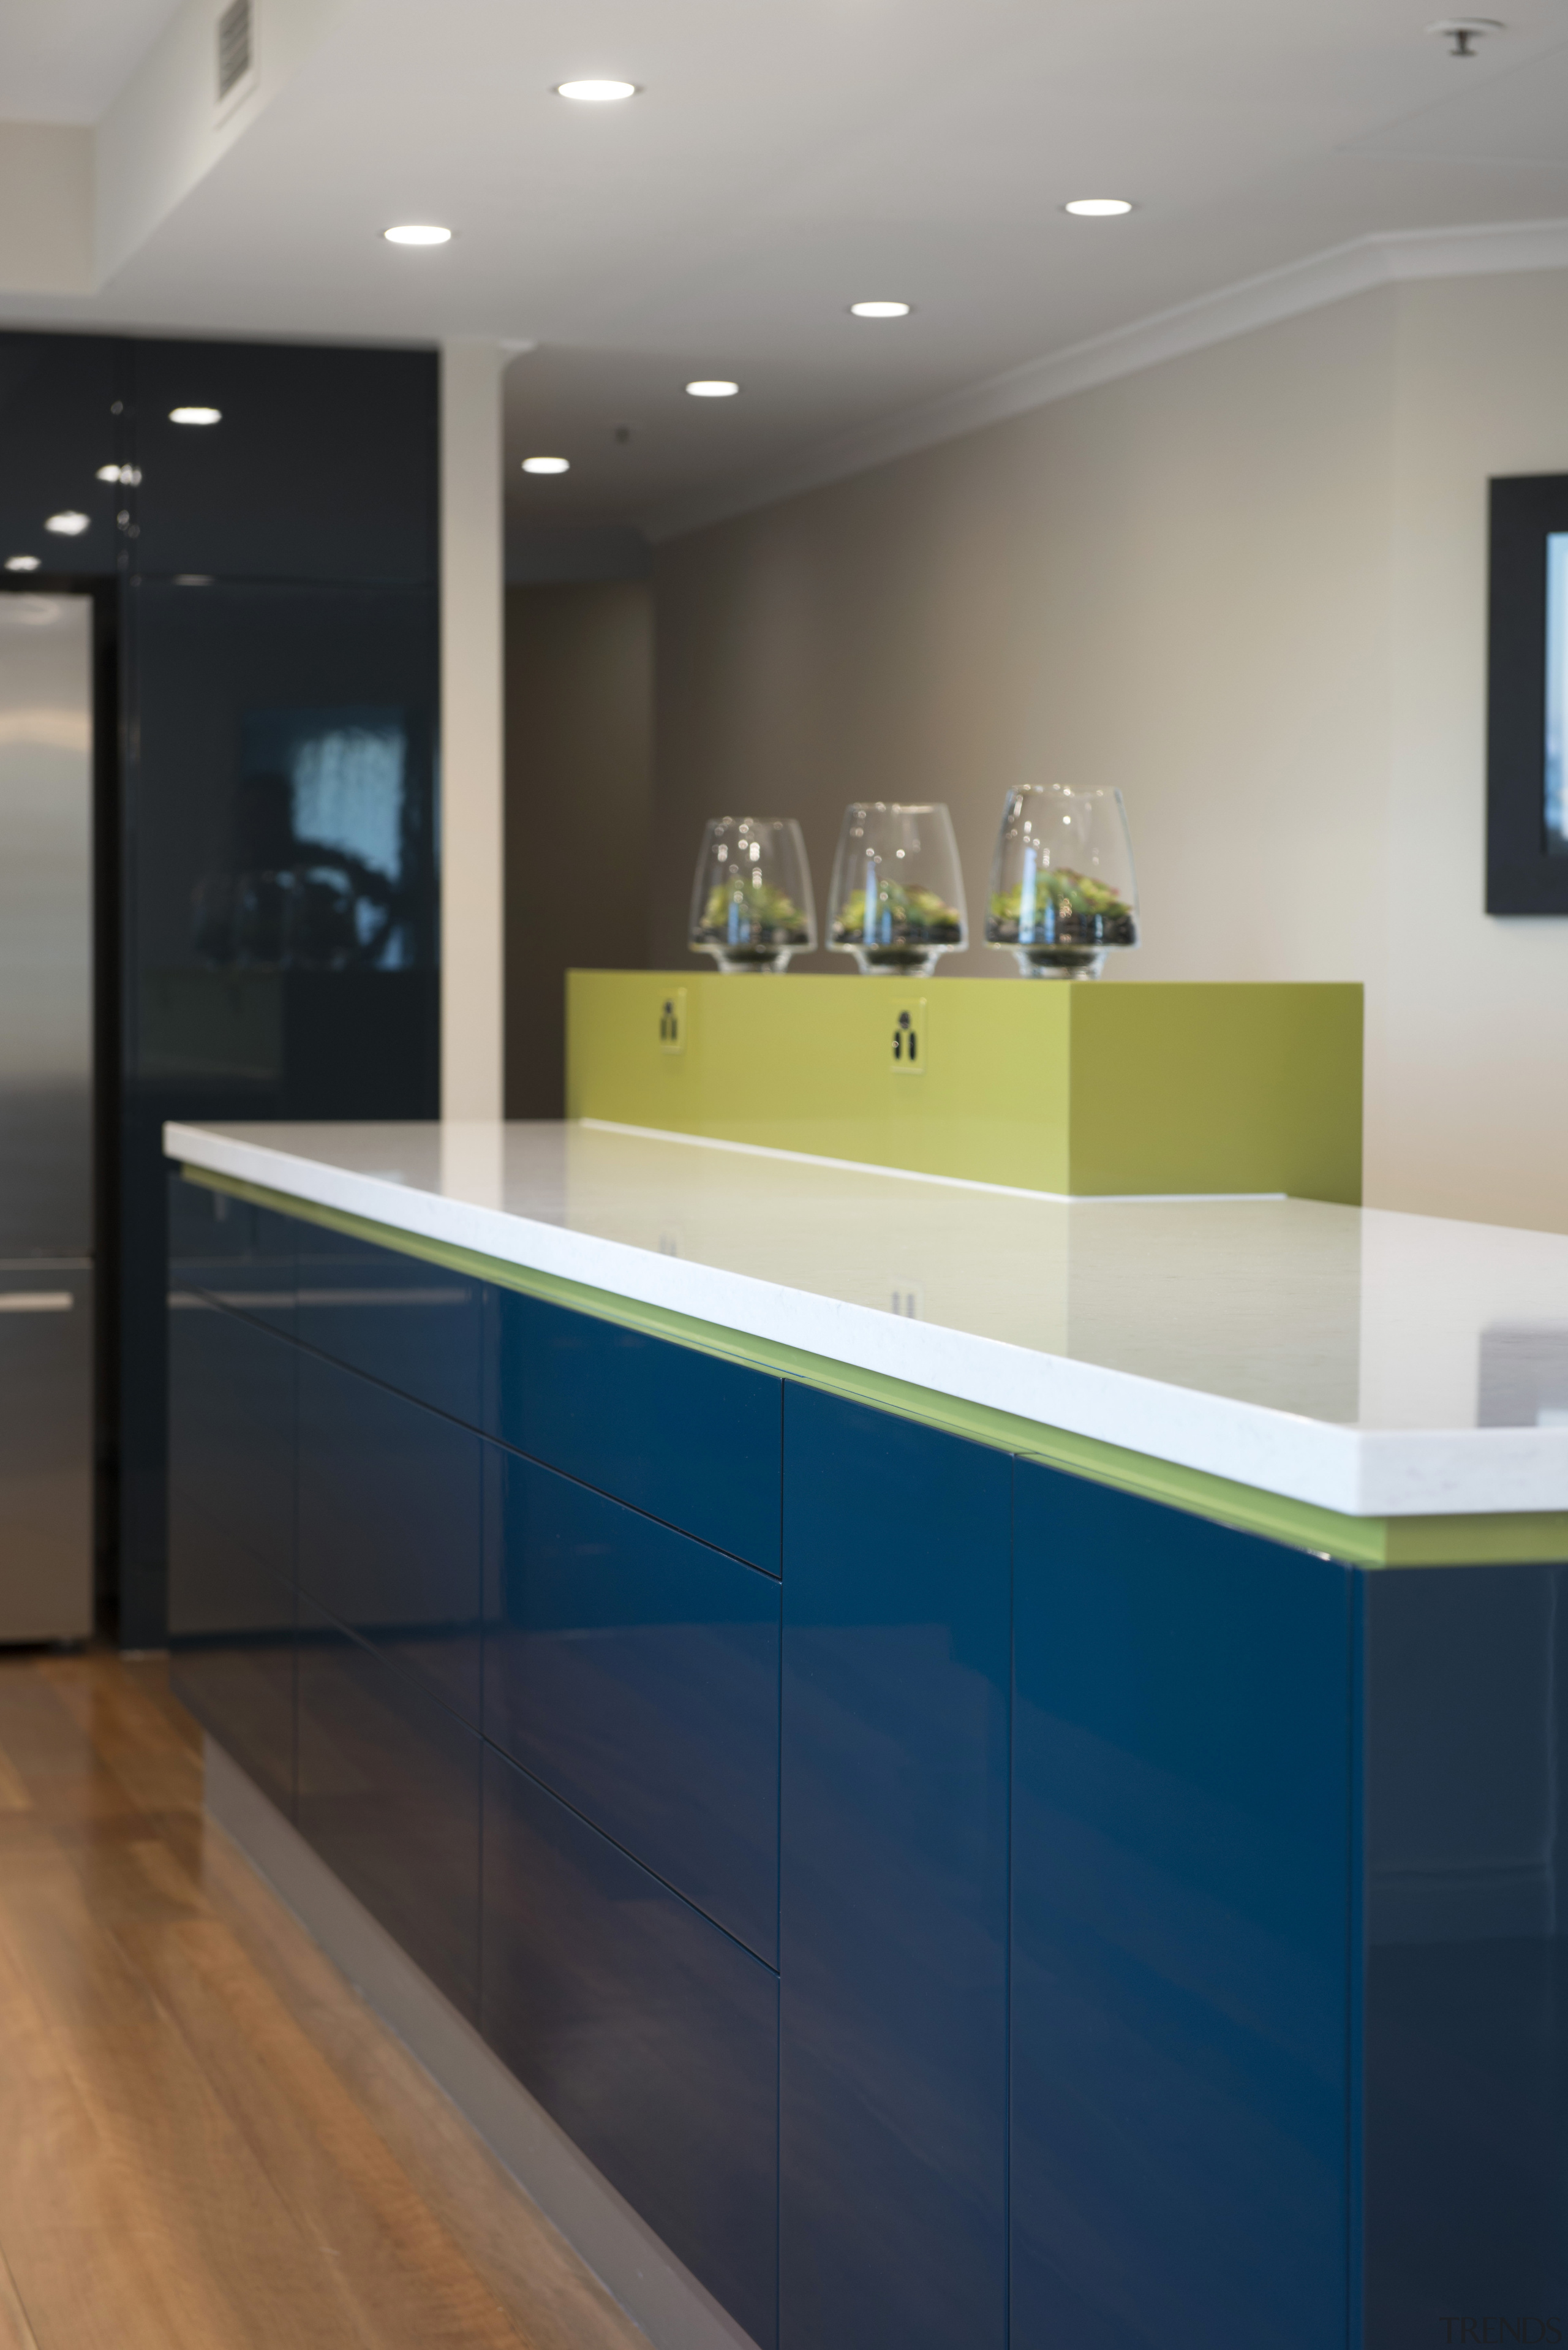 The raised front cabinet on the island provides architecture, bathroom, cabinetry, ceiling, countertop, floor, flooring, glass, interior design, kitchen, light, lighting, room, sink, gray